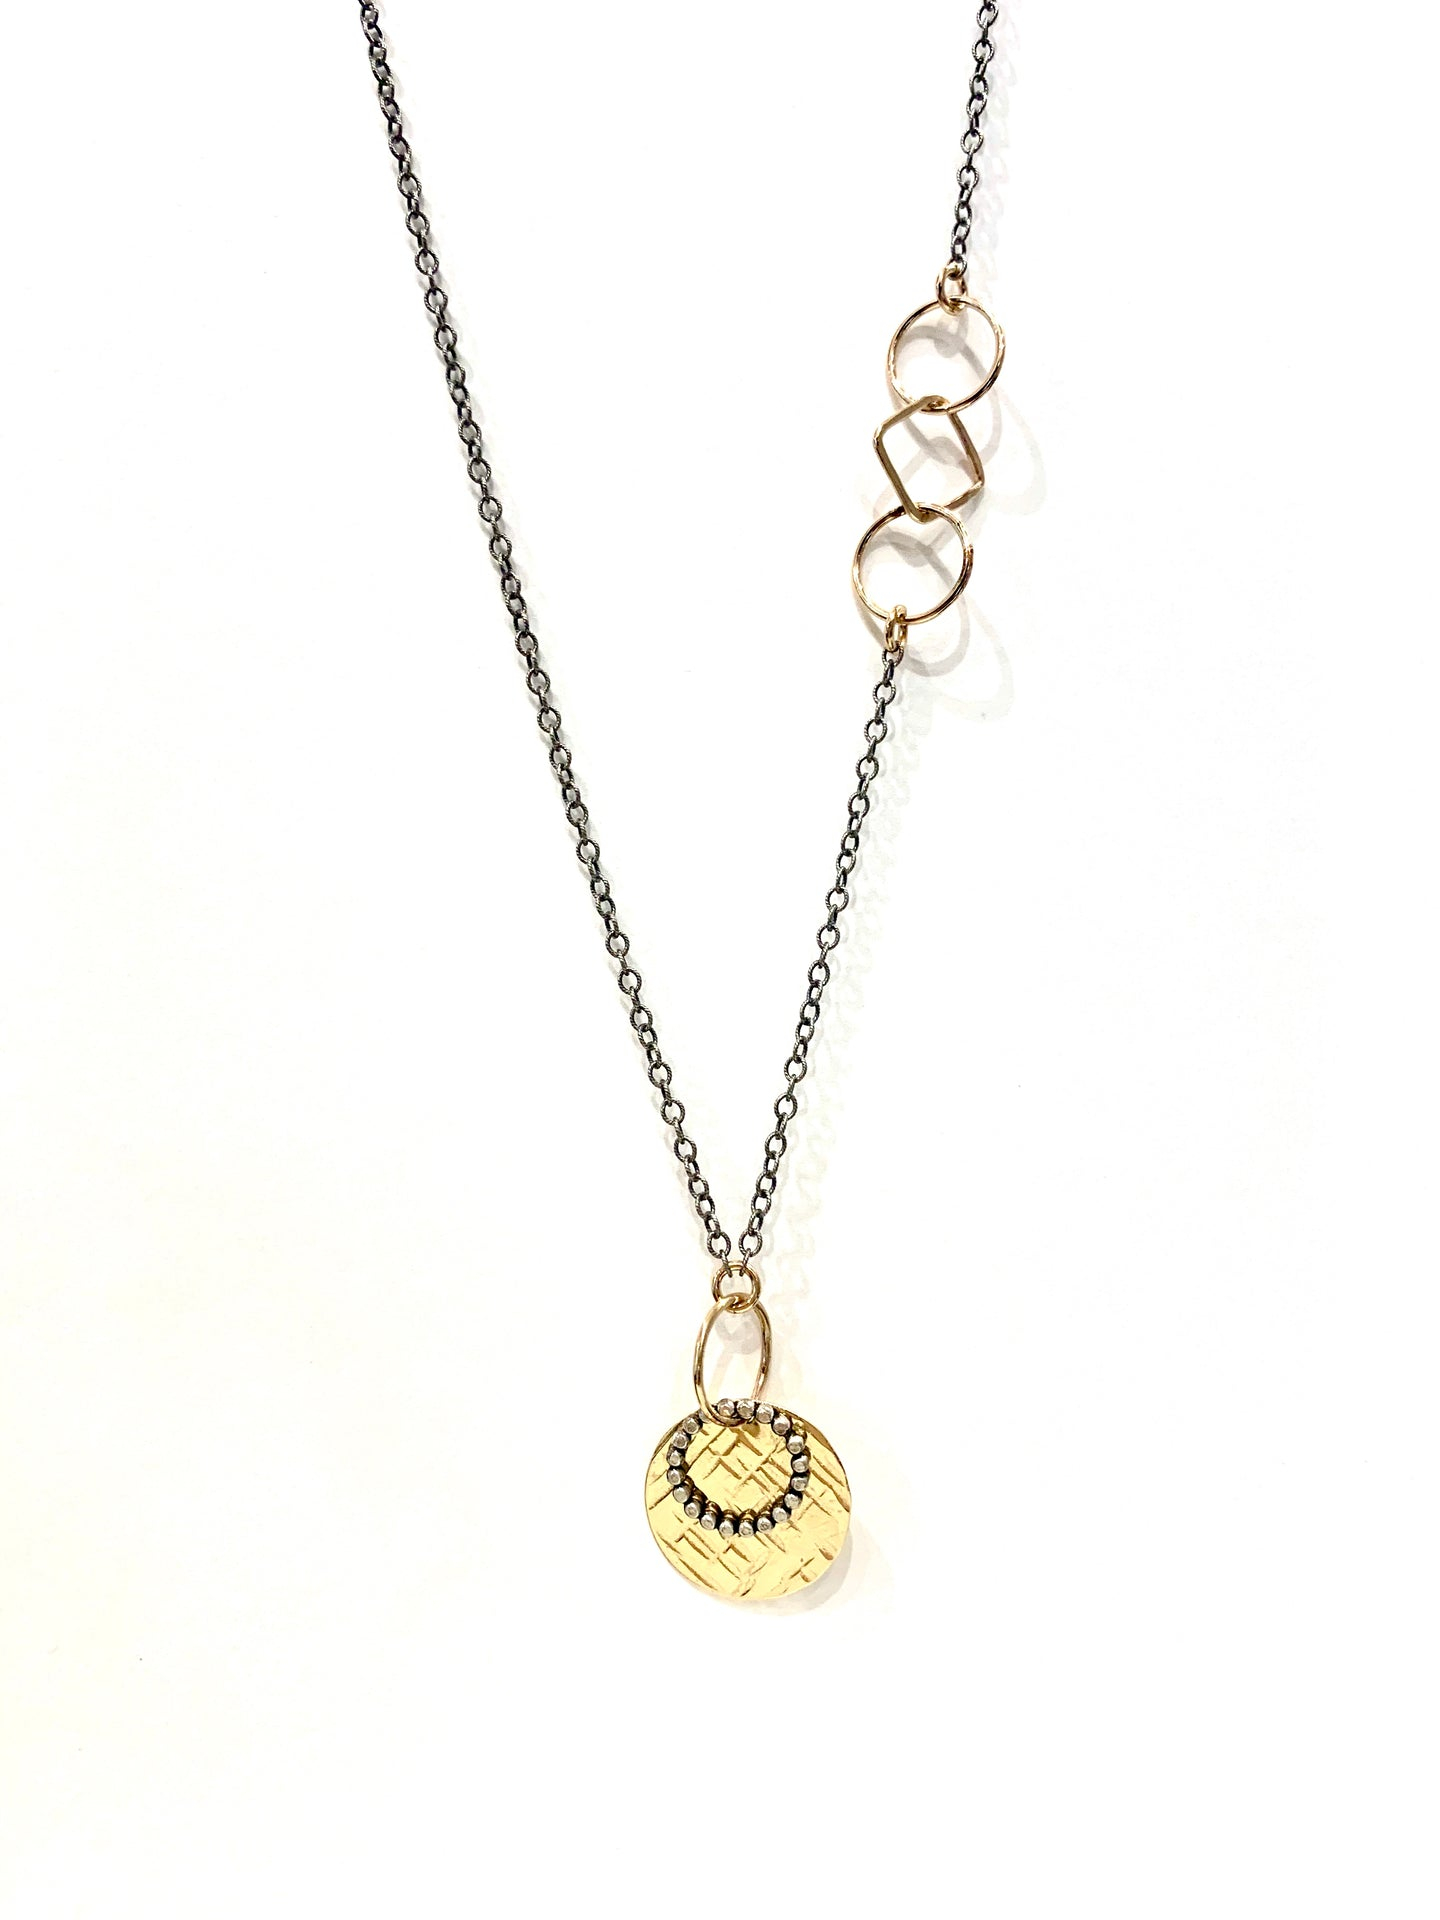 Gold Filled Pendant Necklace